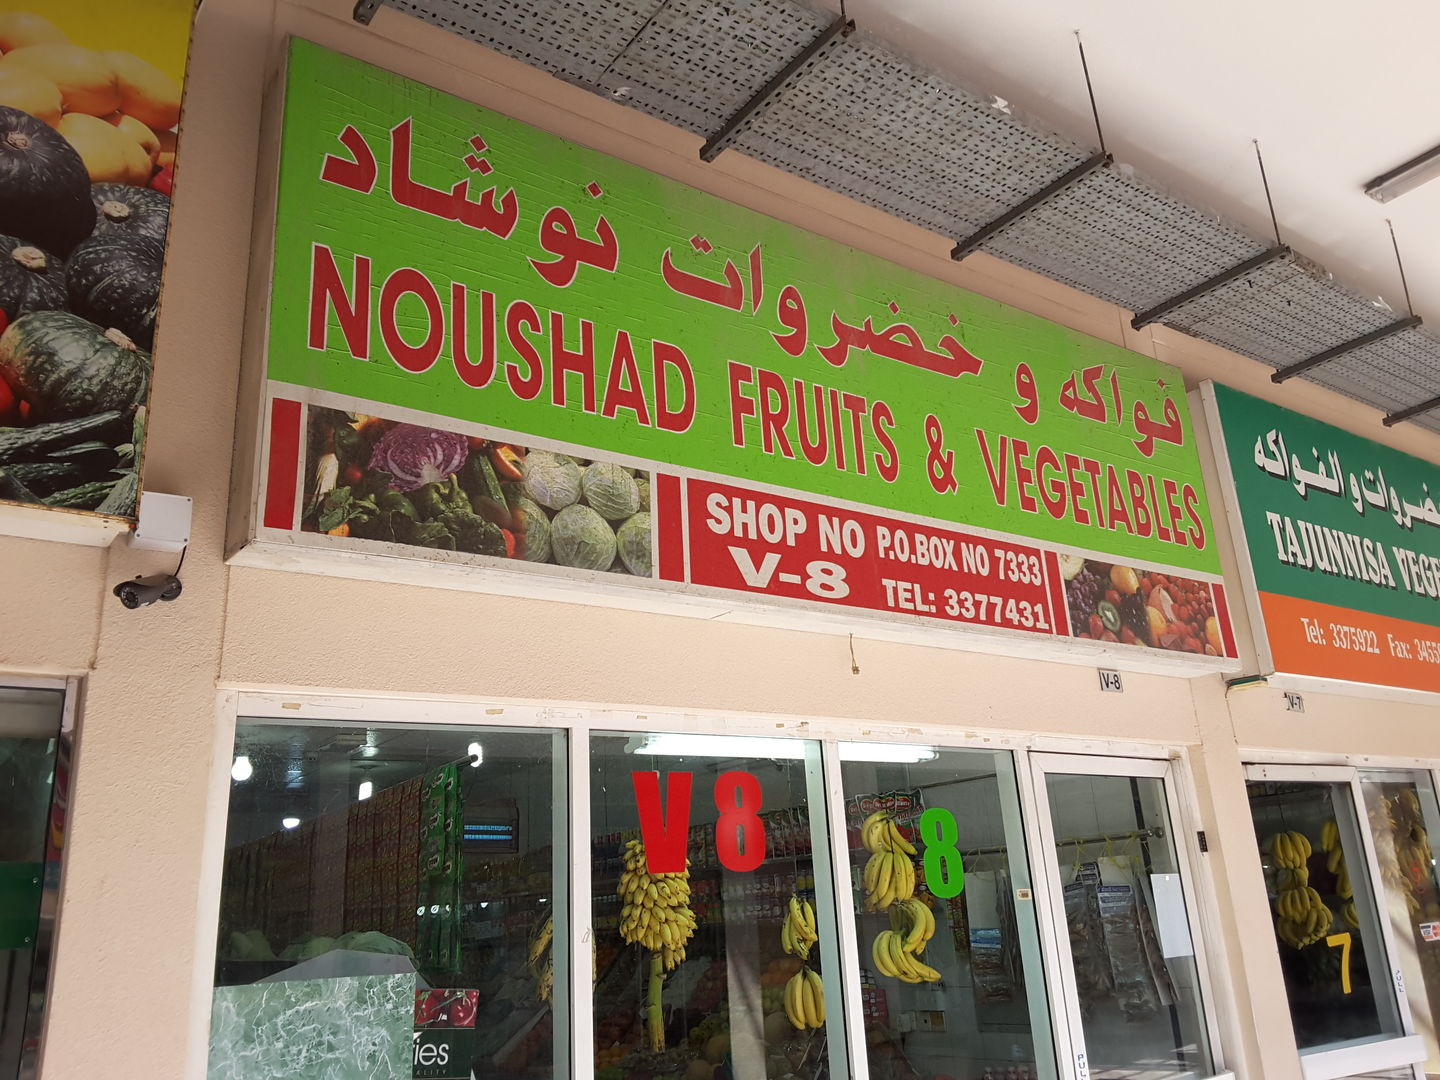 HiDubai-business-noushad-fruits-vegetables-shopping-supermarkets-hypermarkets-grocery-stores-al-karama-dubai-2